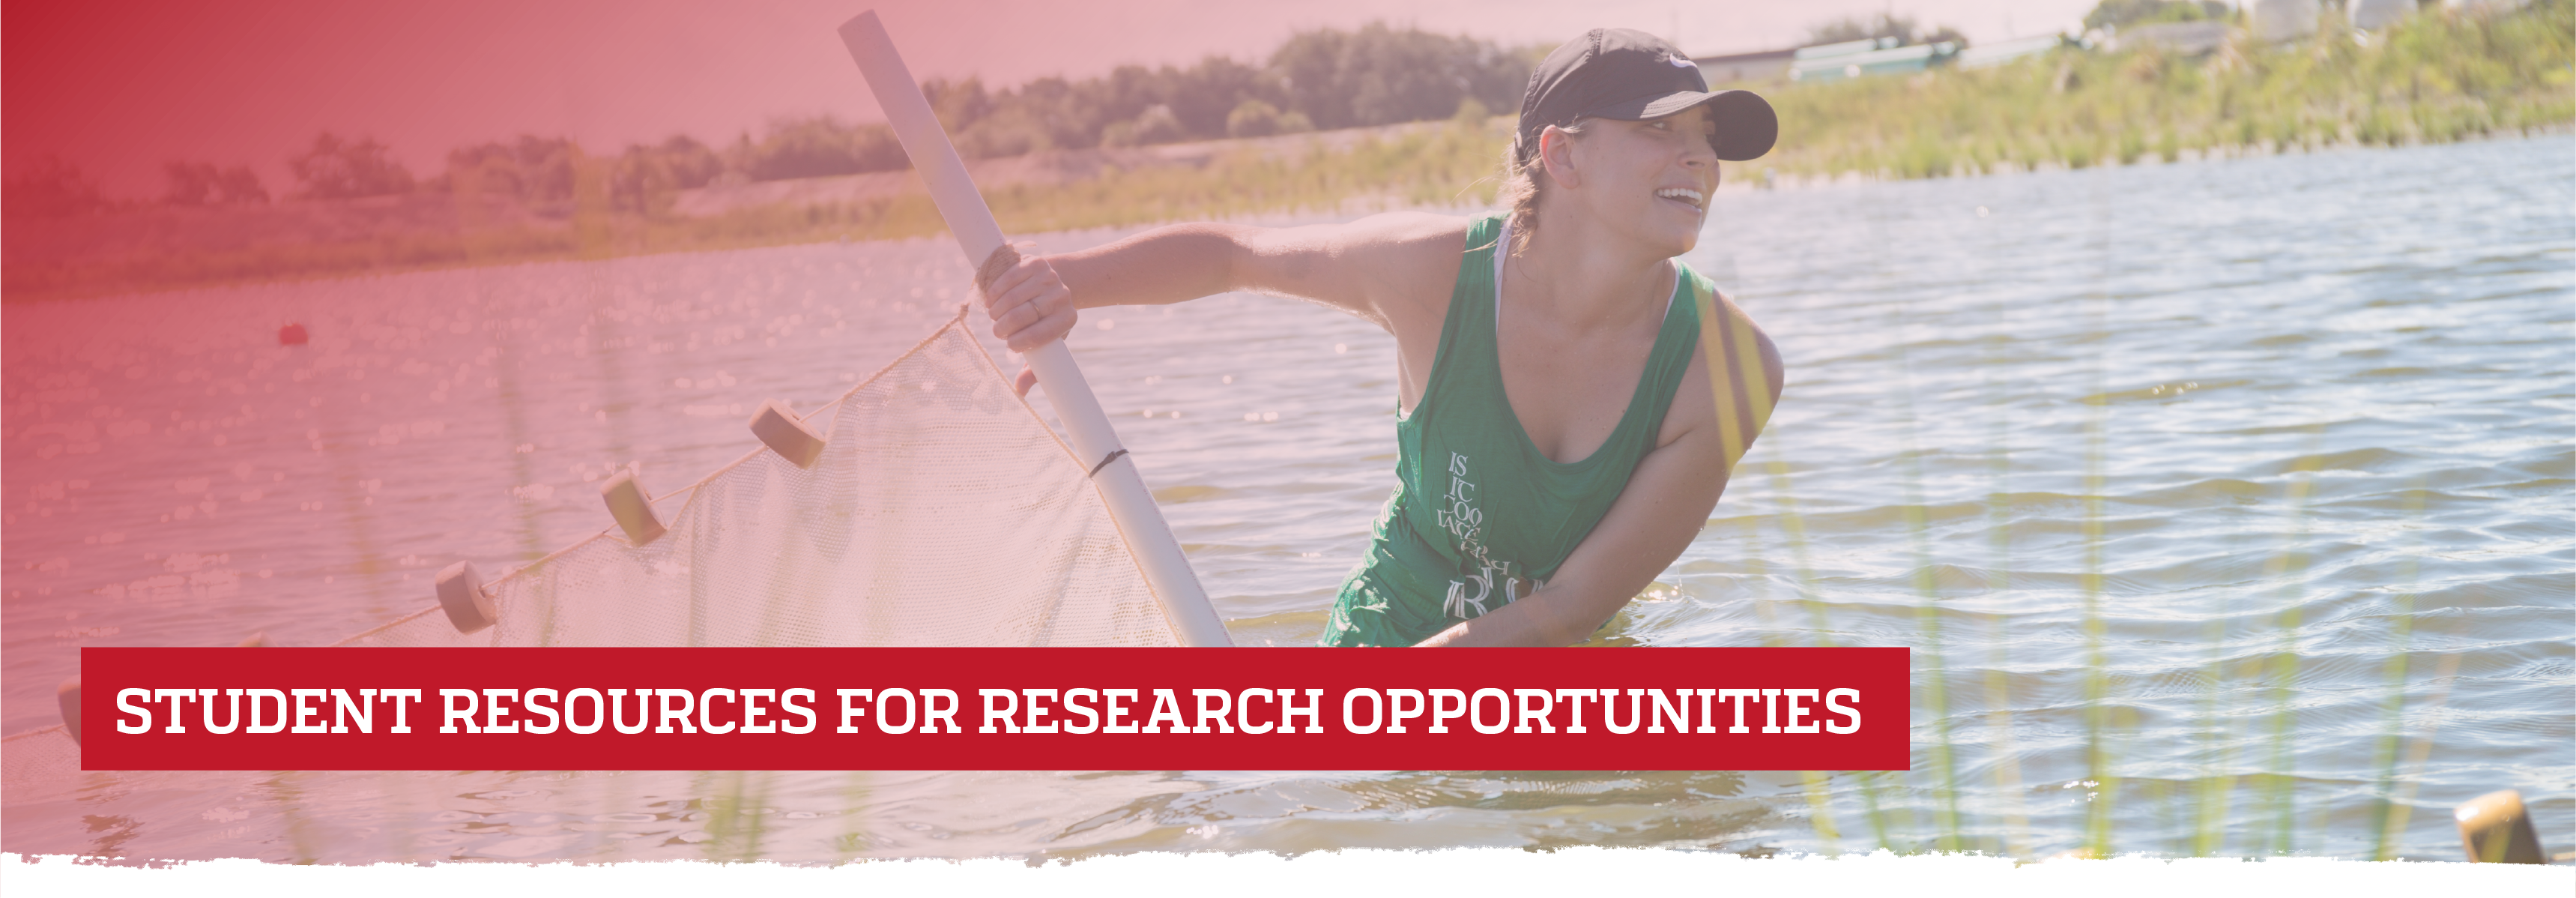 Female intern working in lake; Student Resources for Research Opportunities